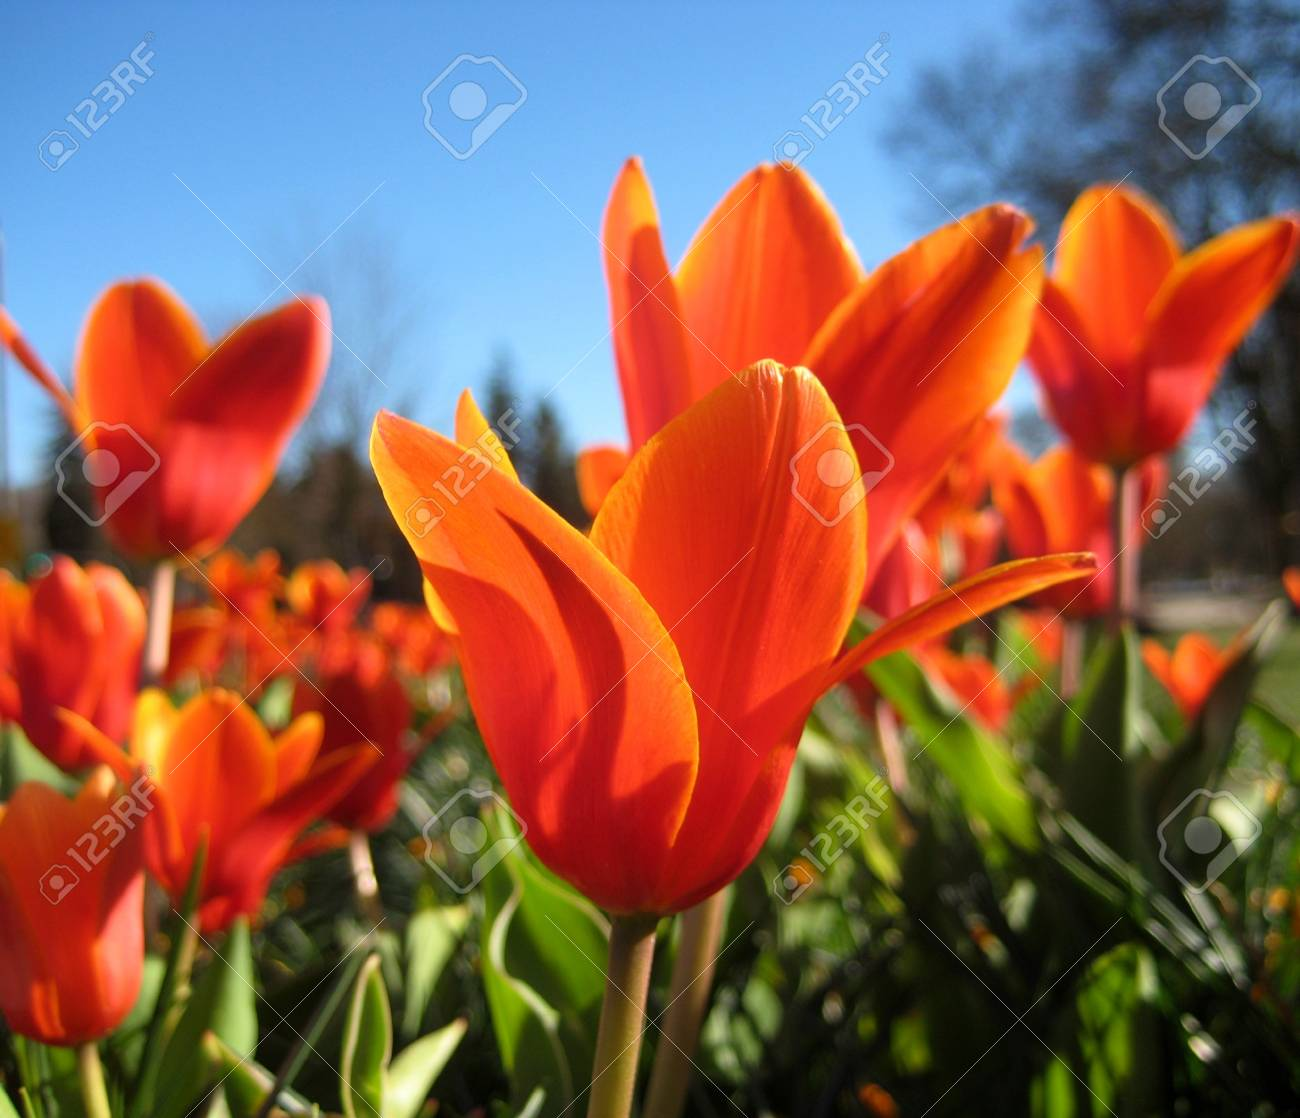 Macro Photo With Bright Spring Flowers On A Background Of Green